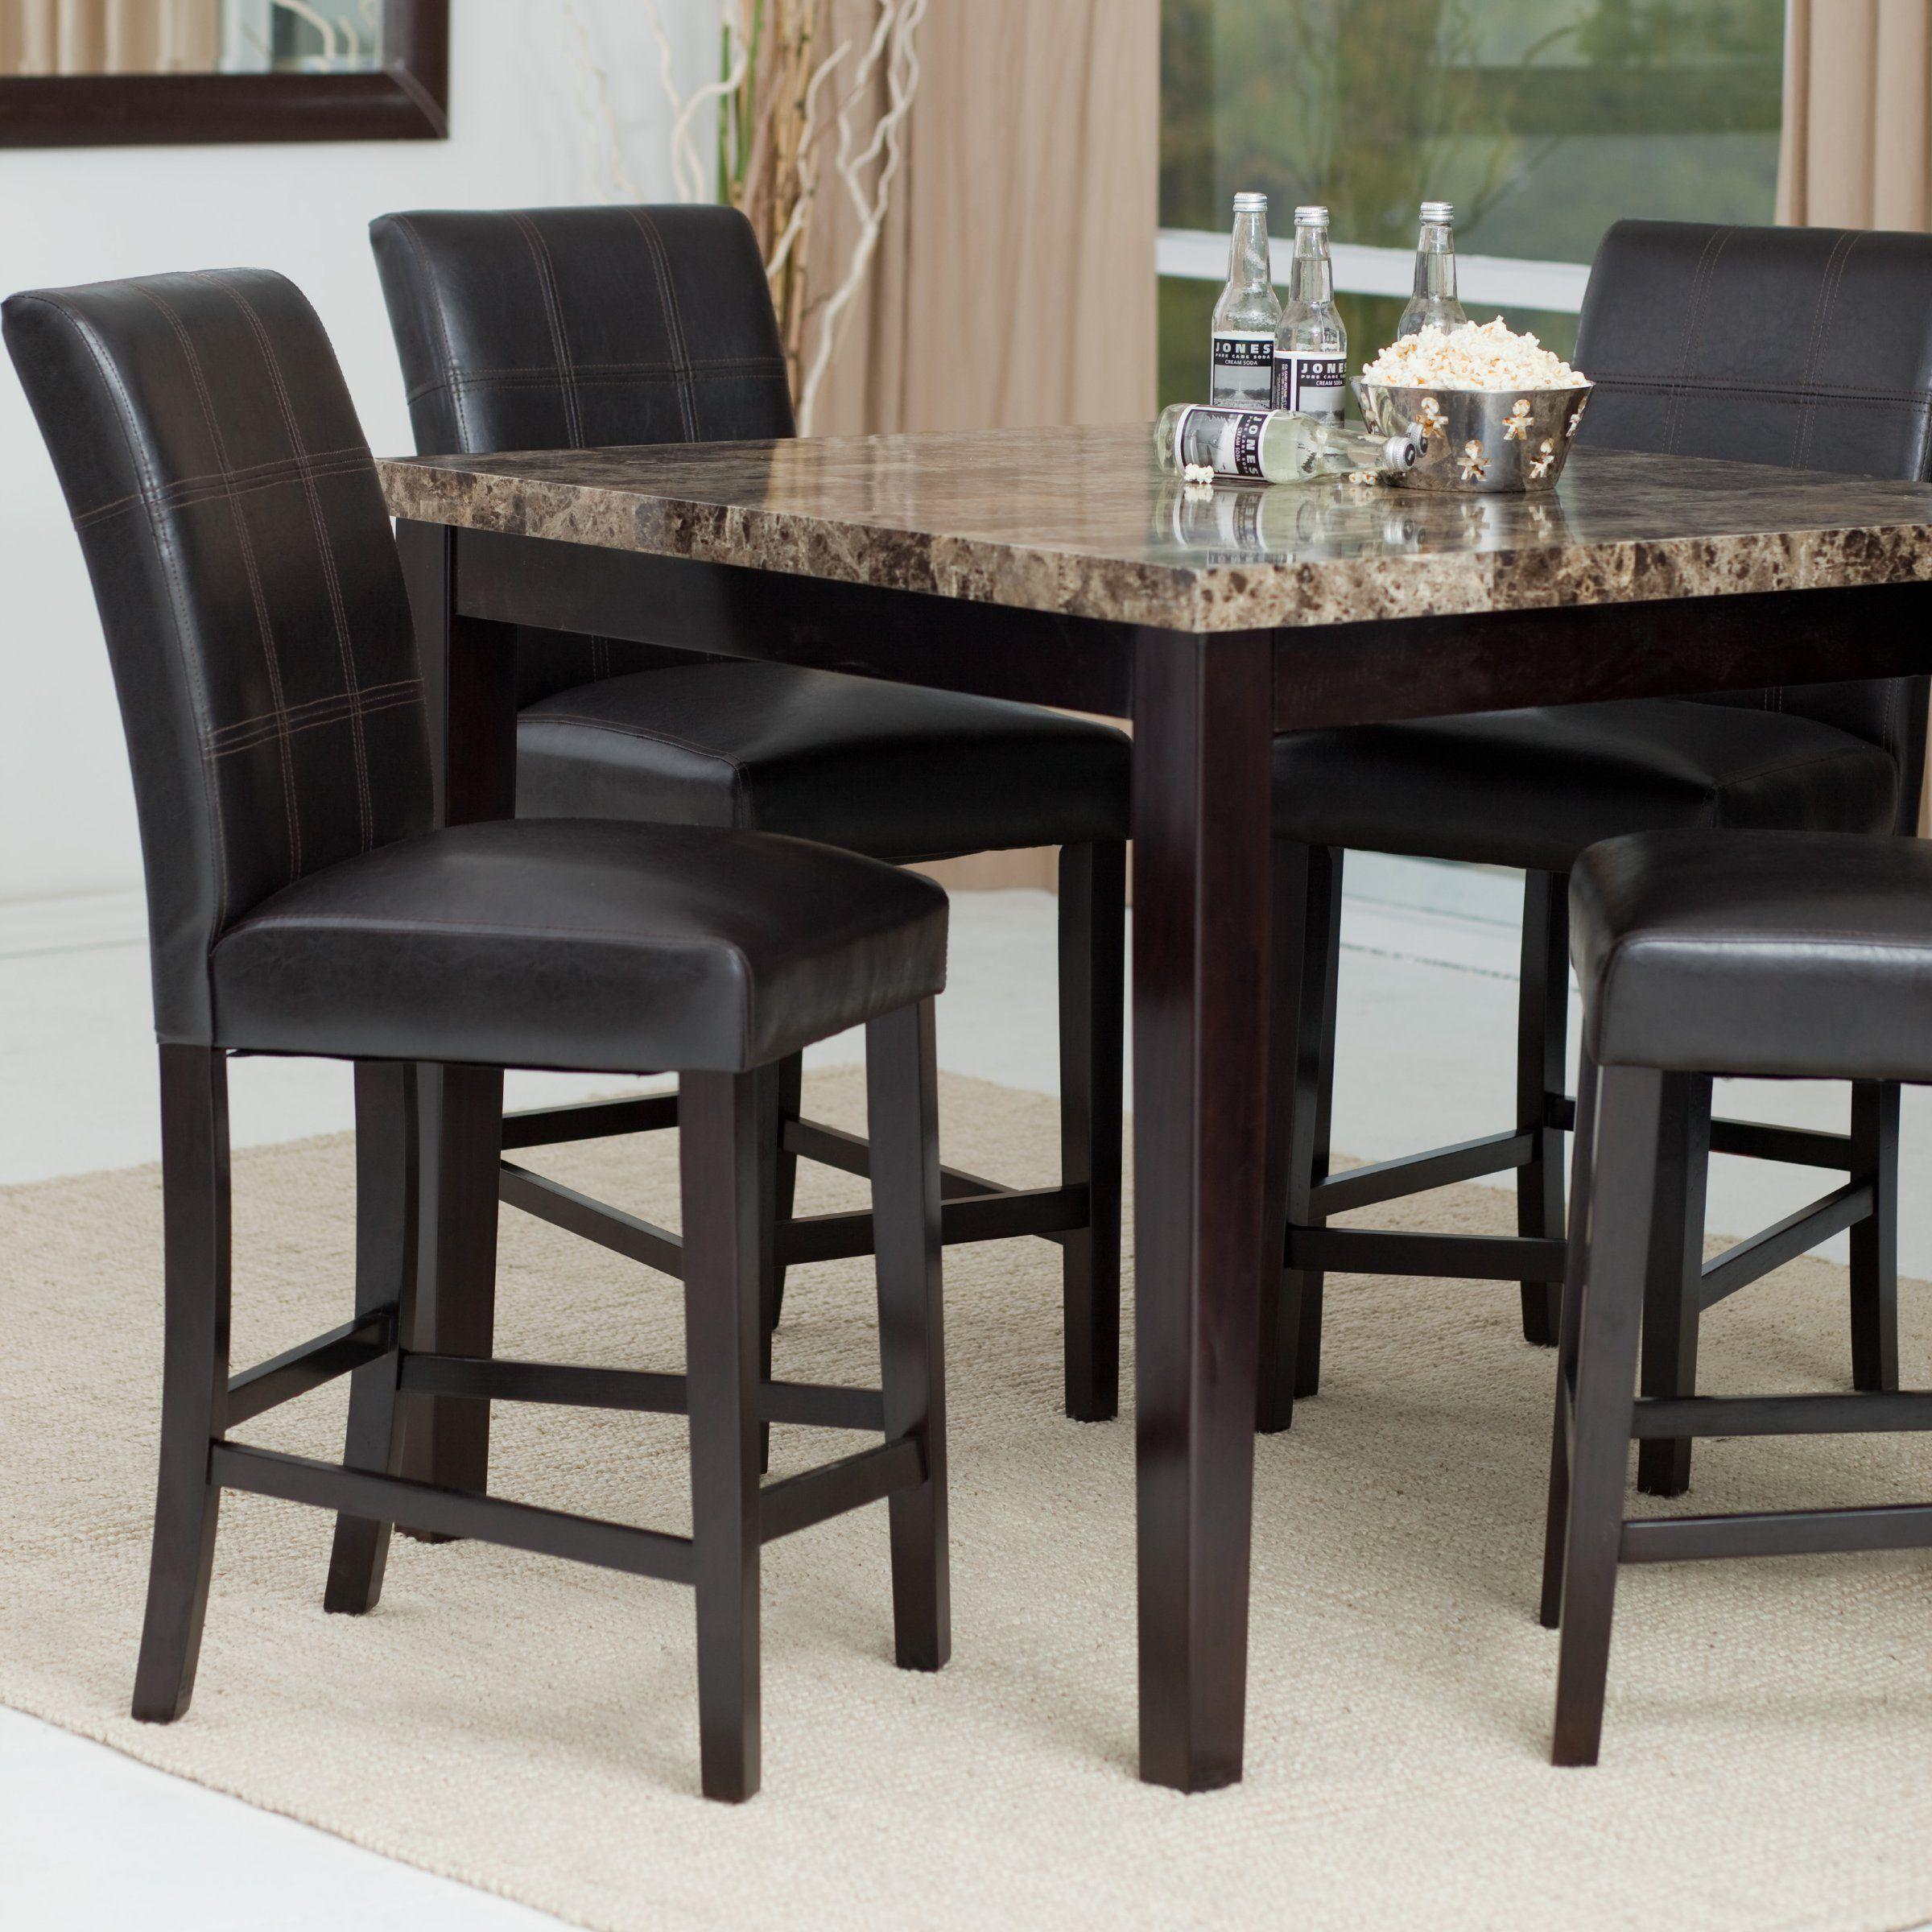 Palazzo 5 Piece Counter Height Dining Set Dining Table Sets at